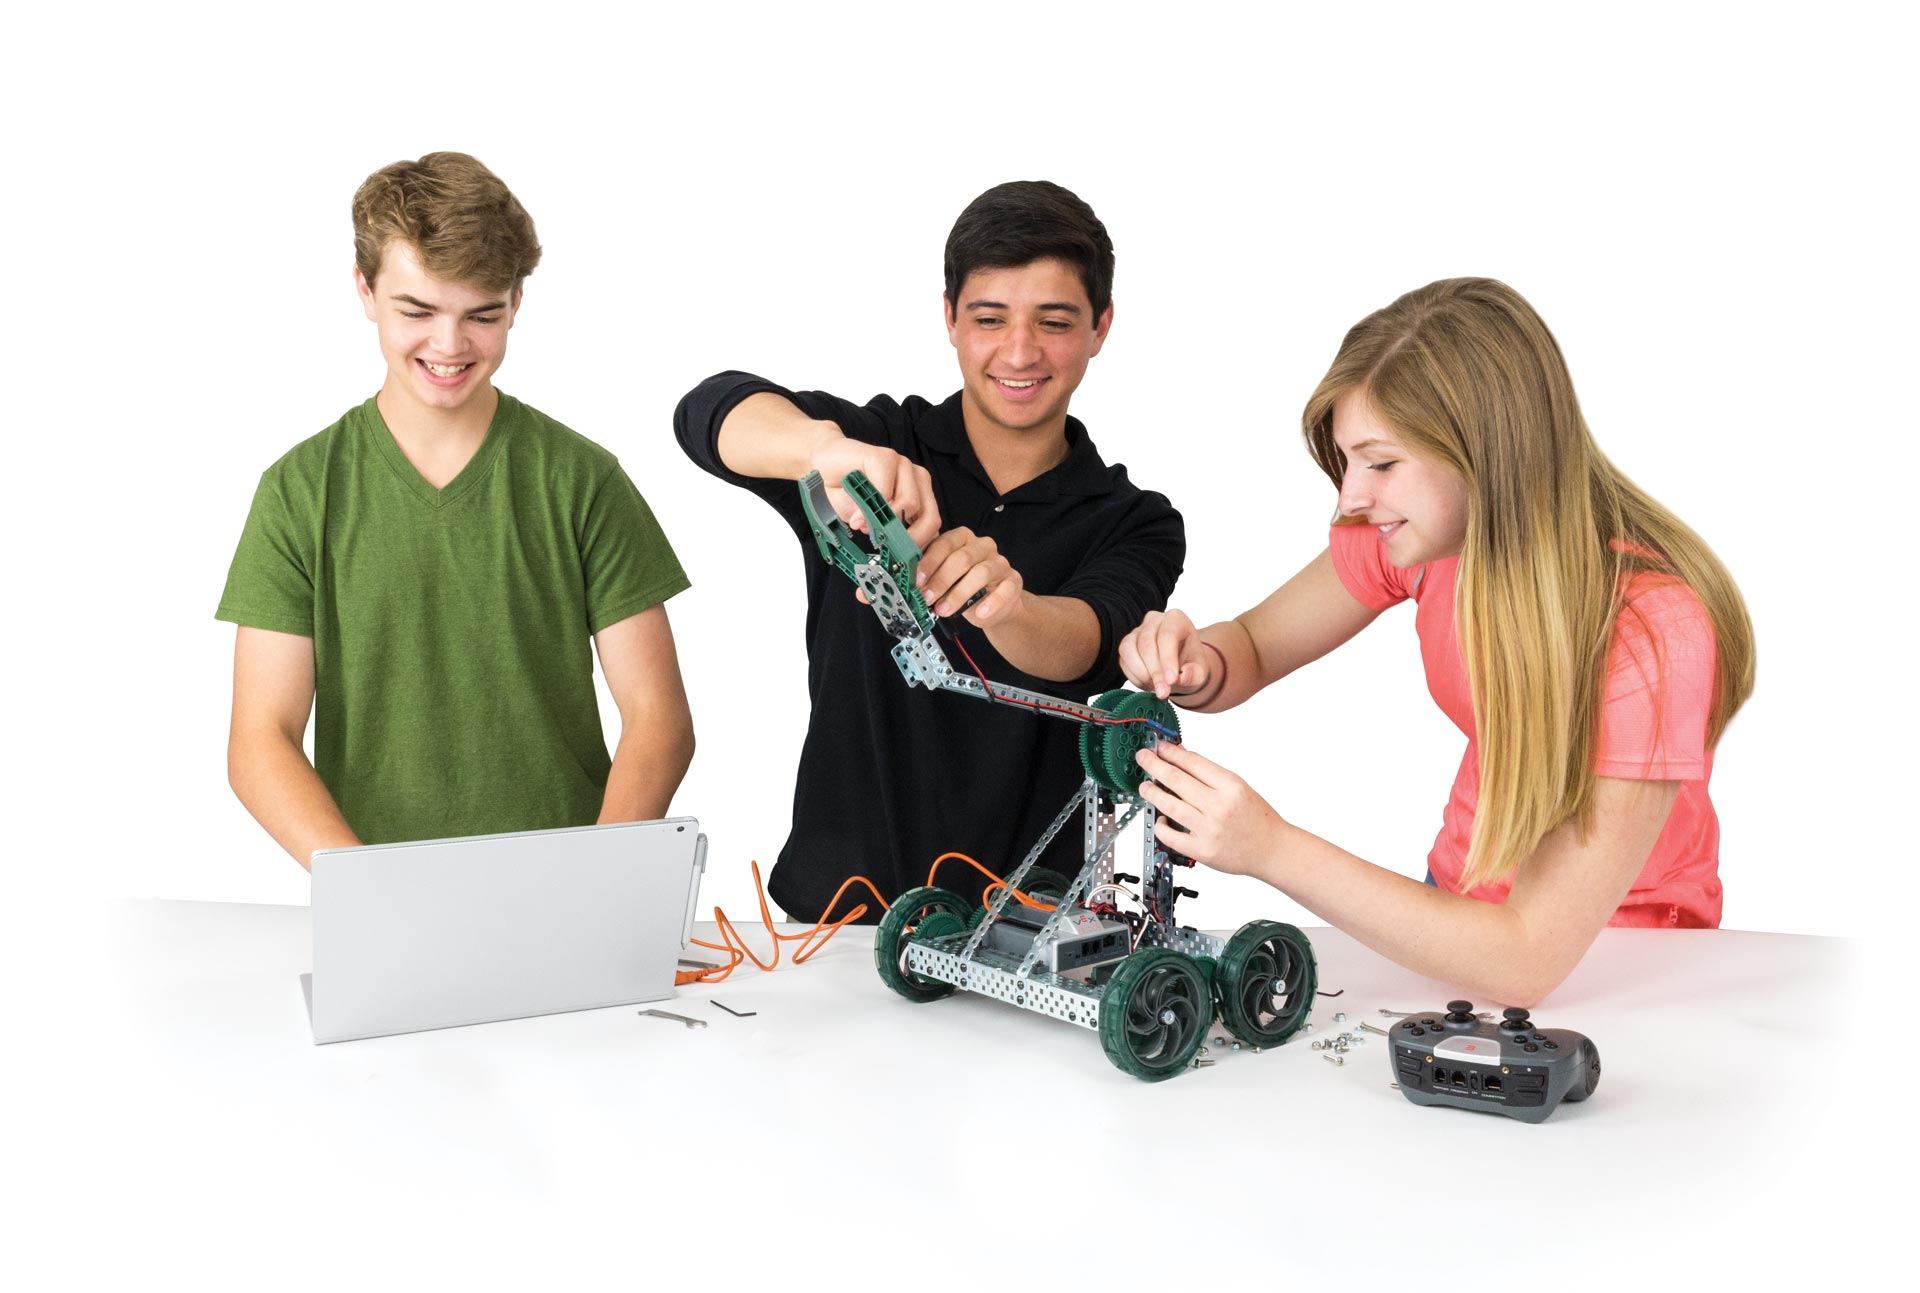 Students building a robot